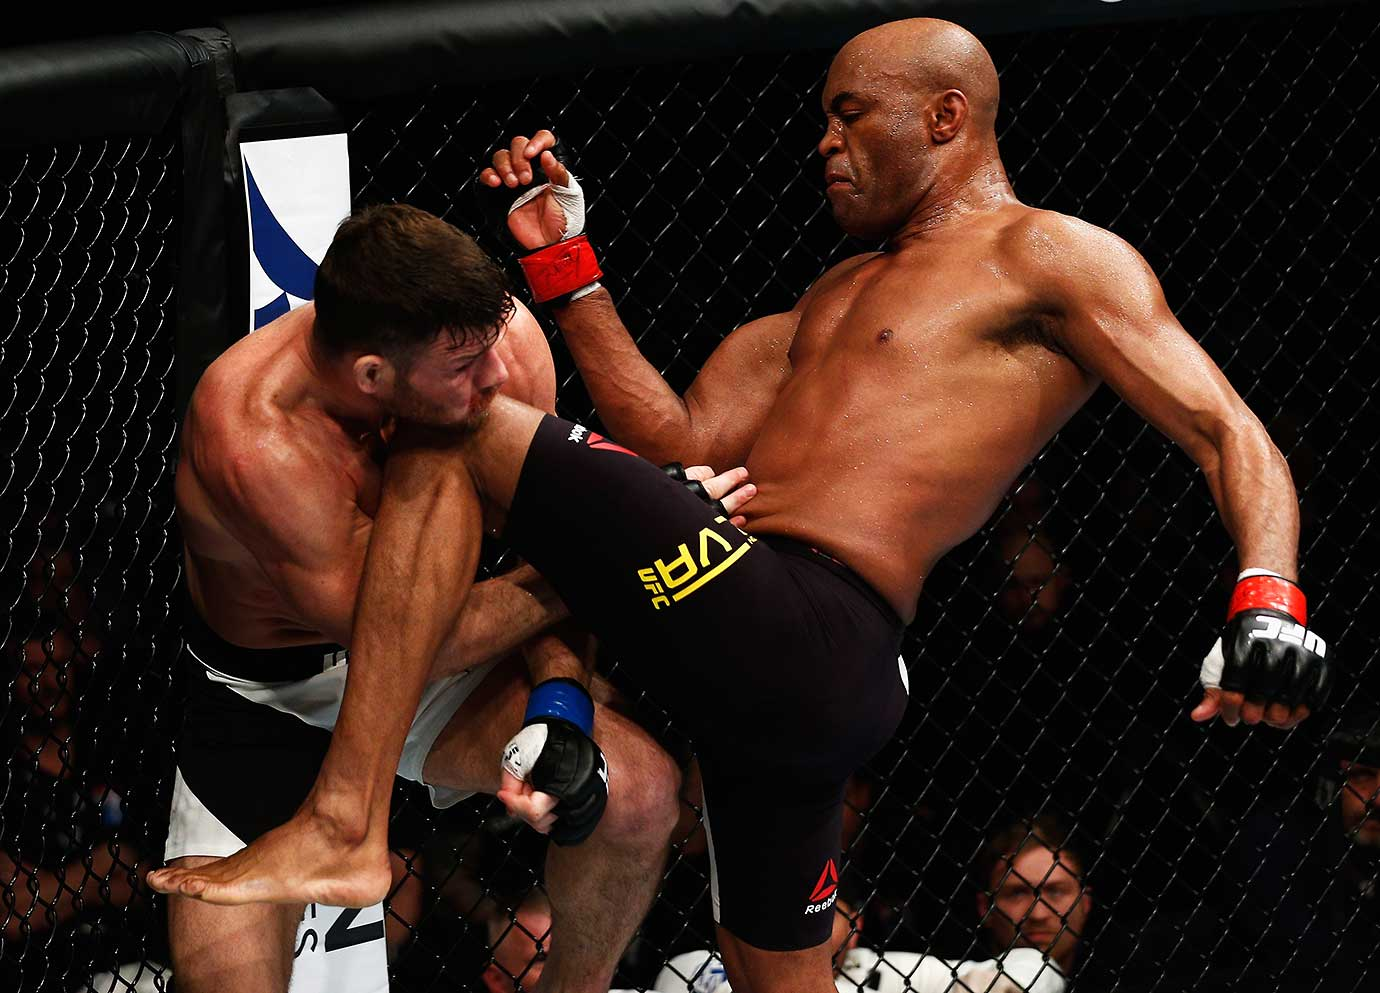 Anderson Silva of Brazil catches Michael Bisping of England with a knee to the chin.